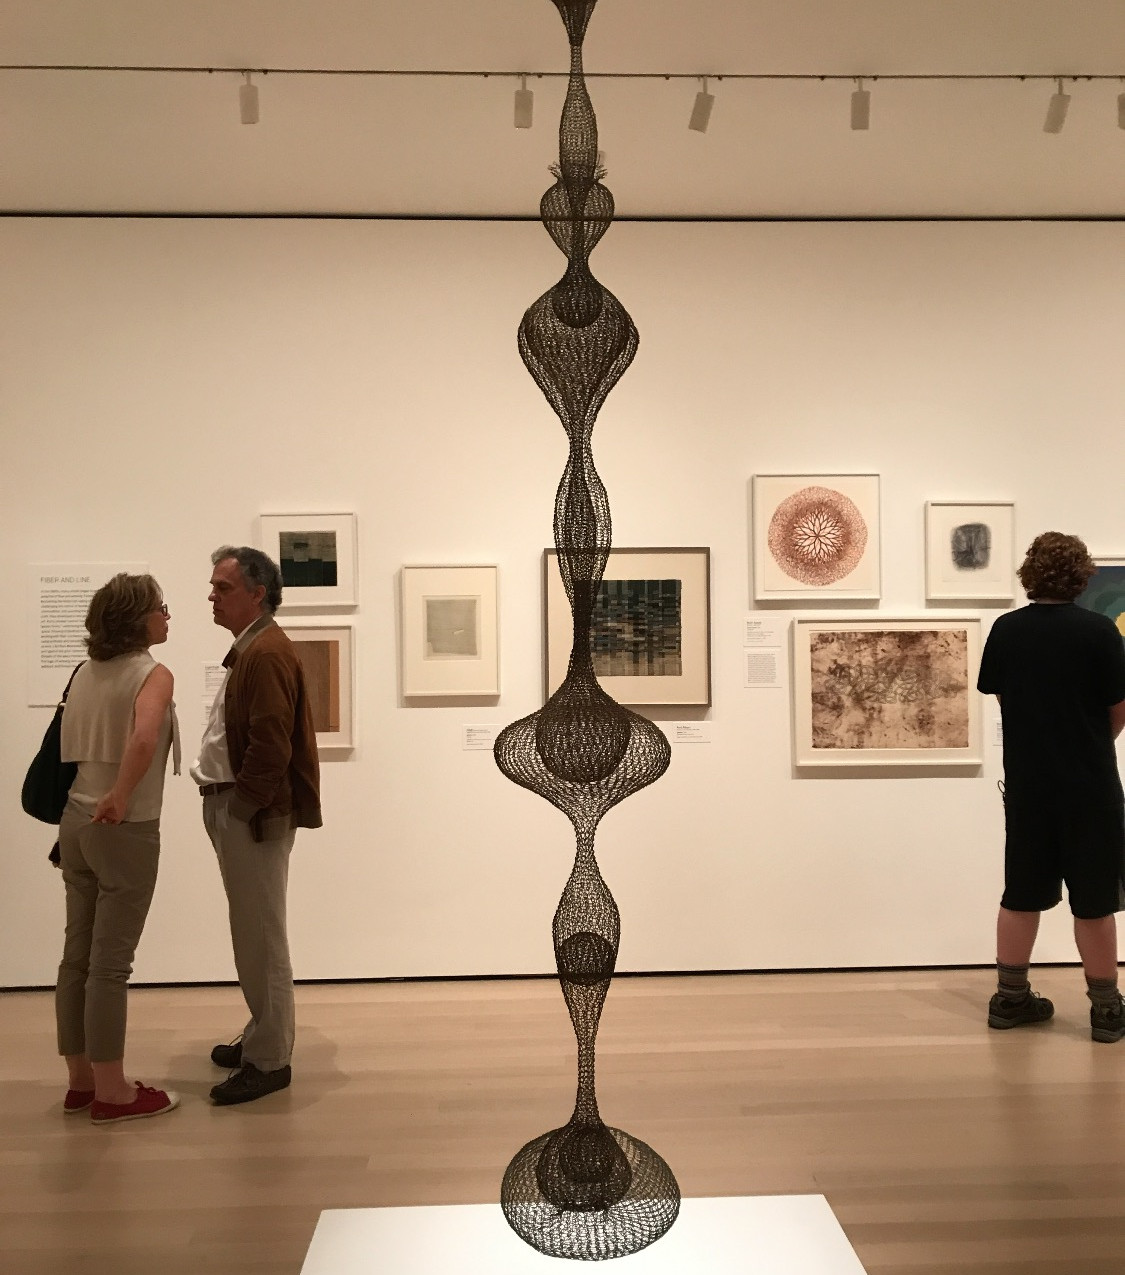 People looking around the exhibit in front of a Ruth Asawa sculpture